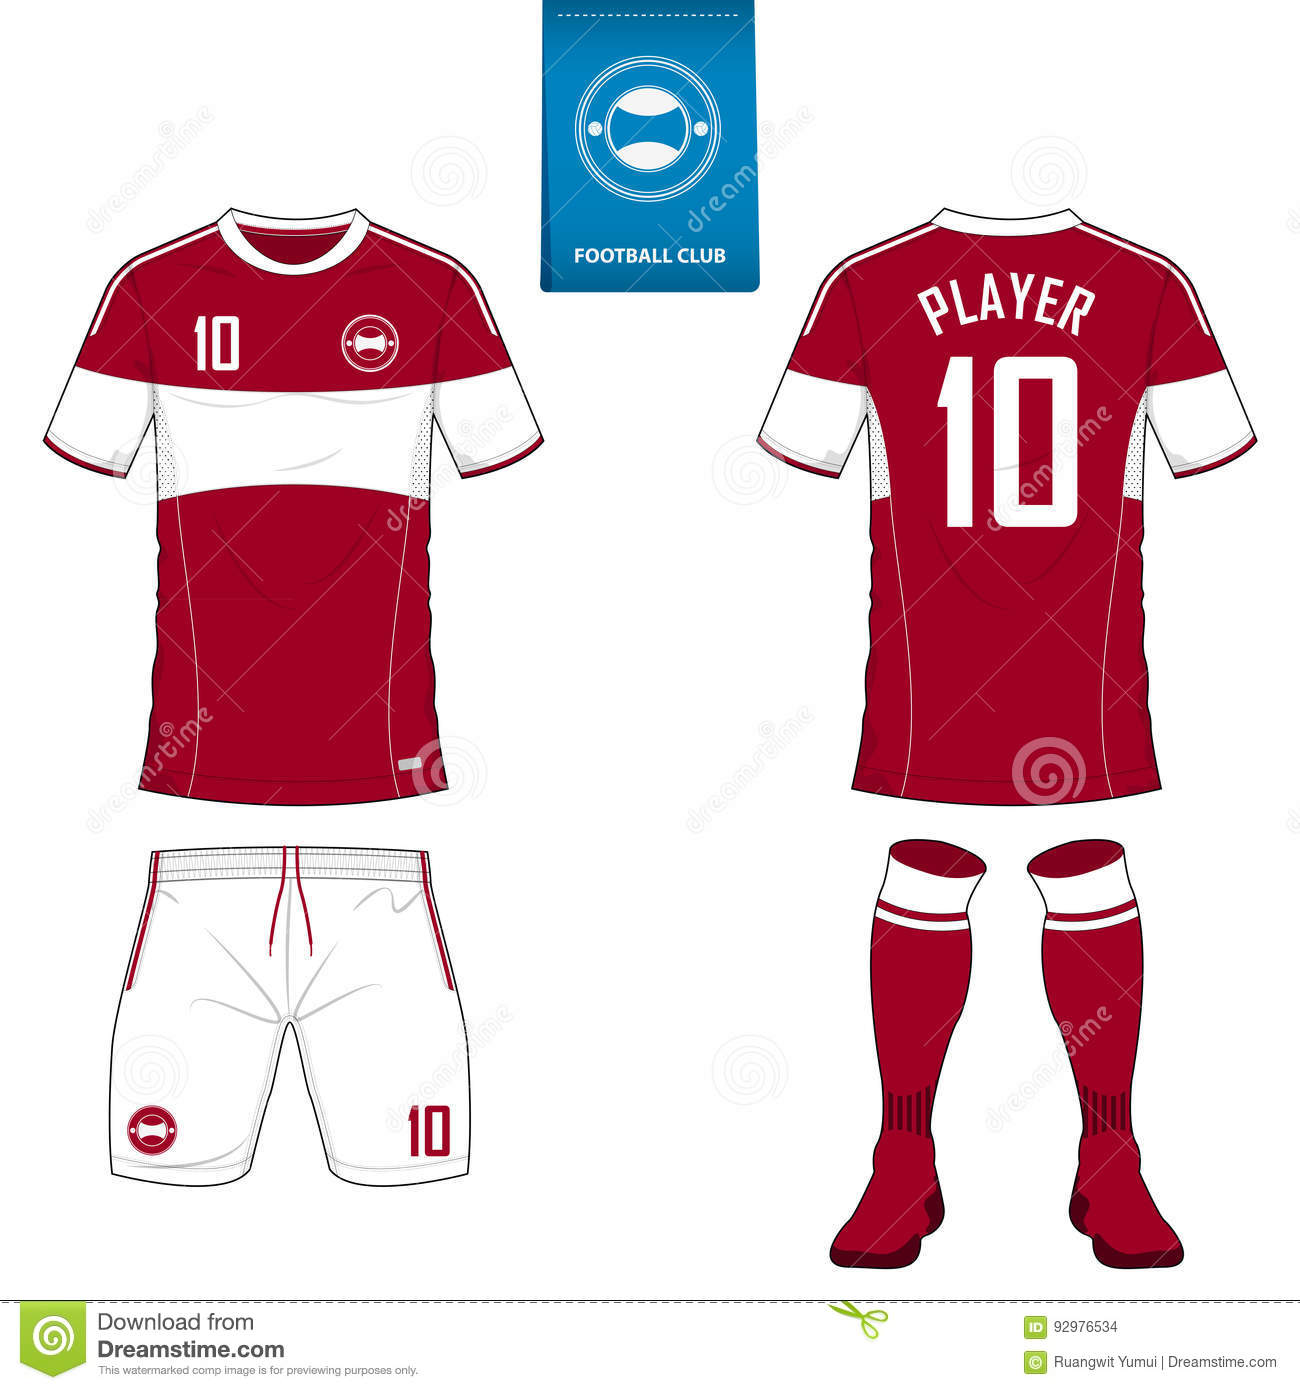 Set Of Soccer Kit Or Football Jersey Template For Club Short Sleeve Shirt Mock Up Front And Back View Uniform